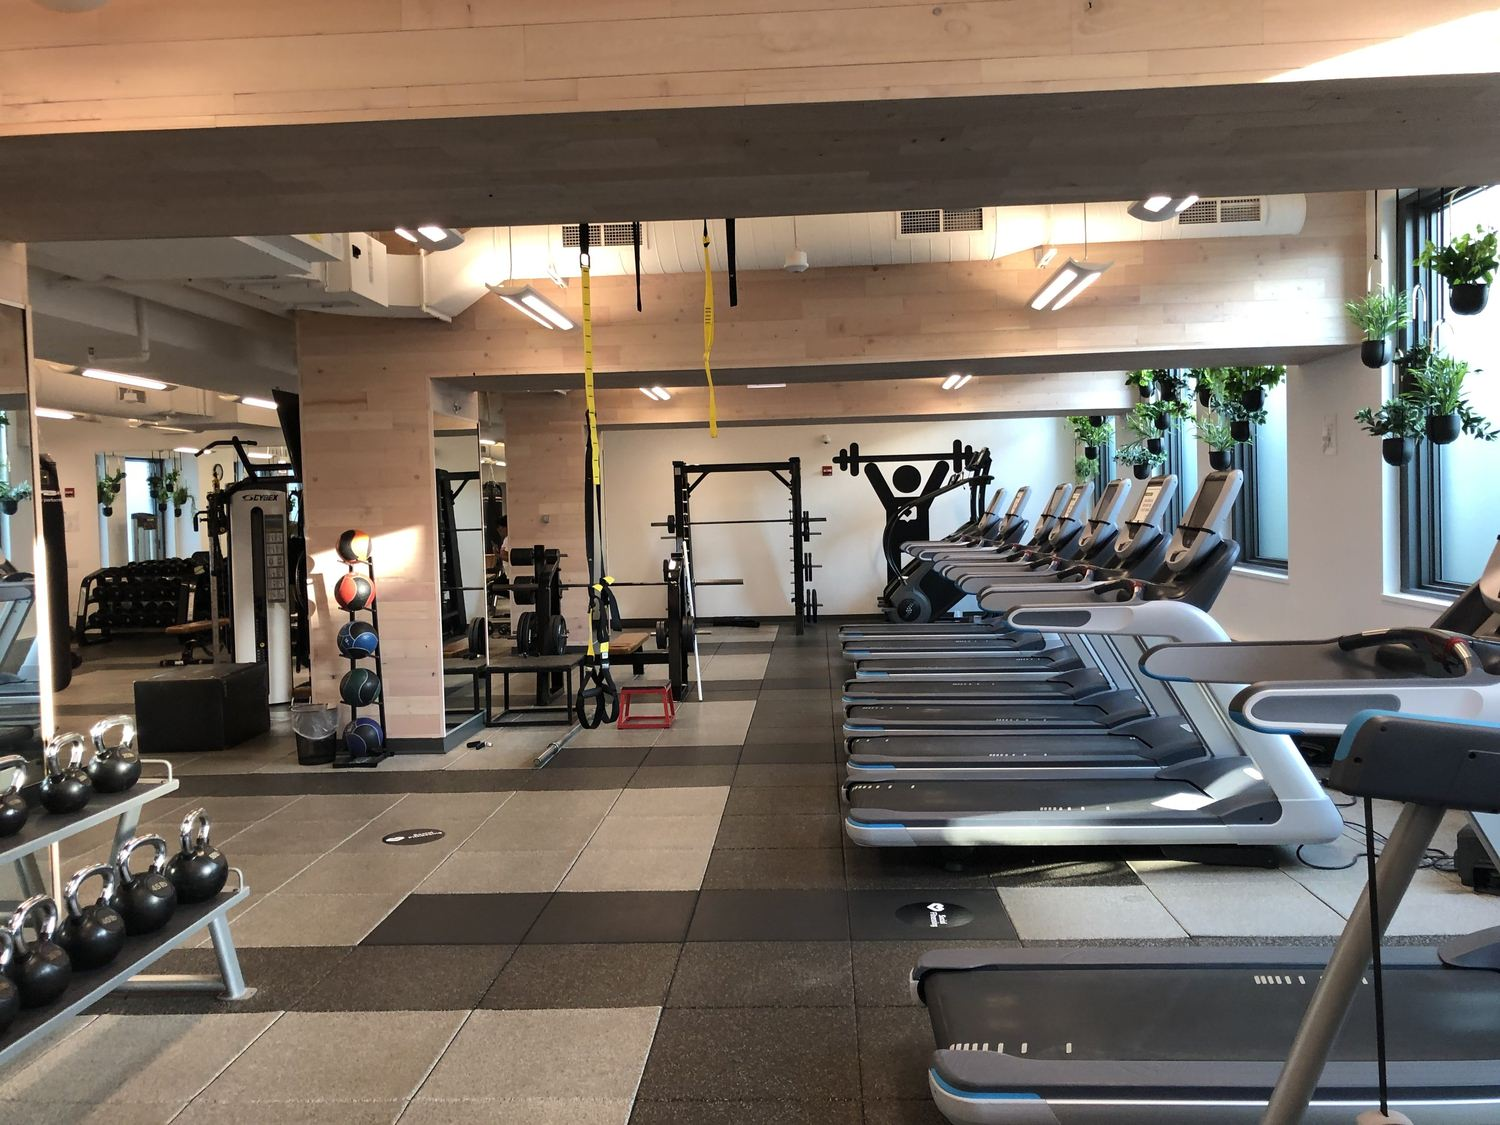 A gym with a row of treadmills and some kettlebells, as well as a weight bench.